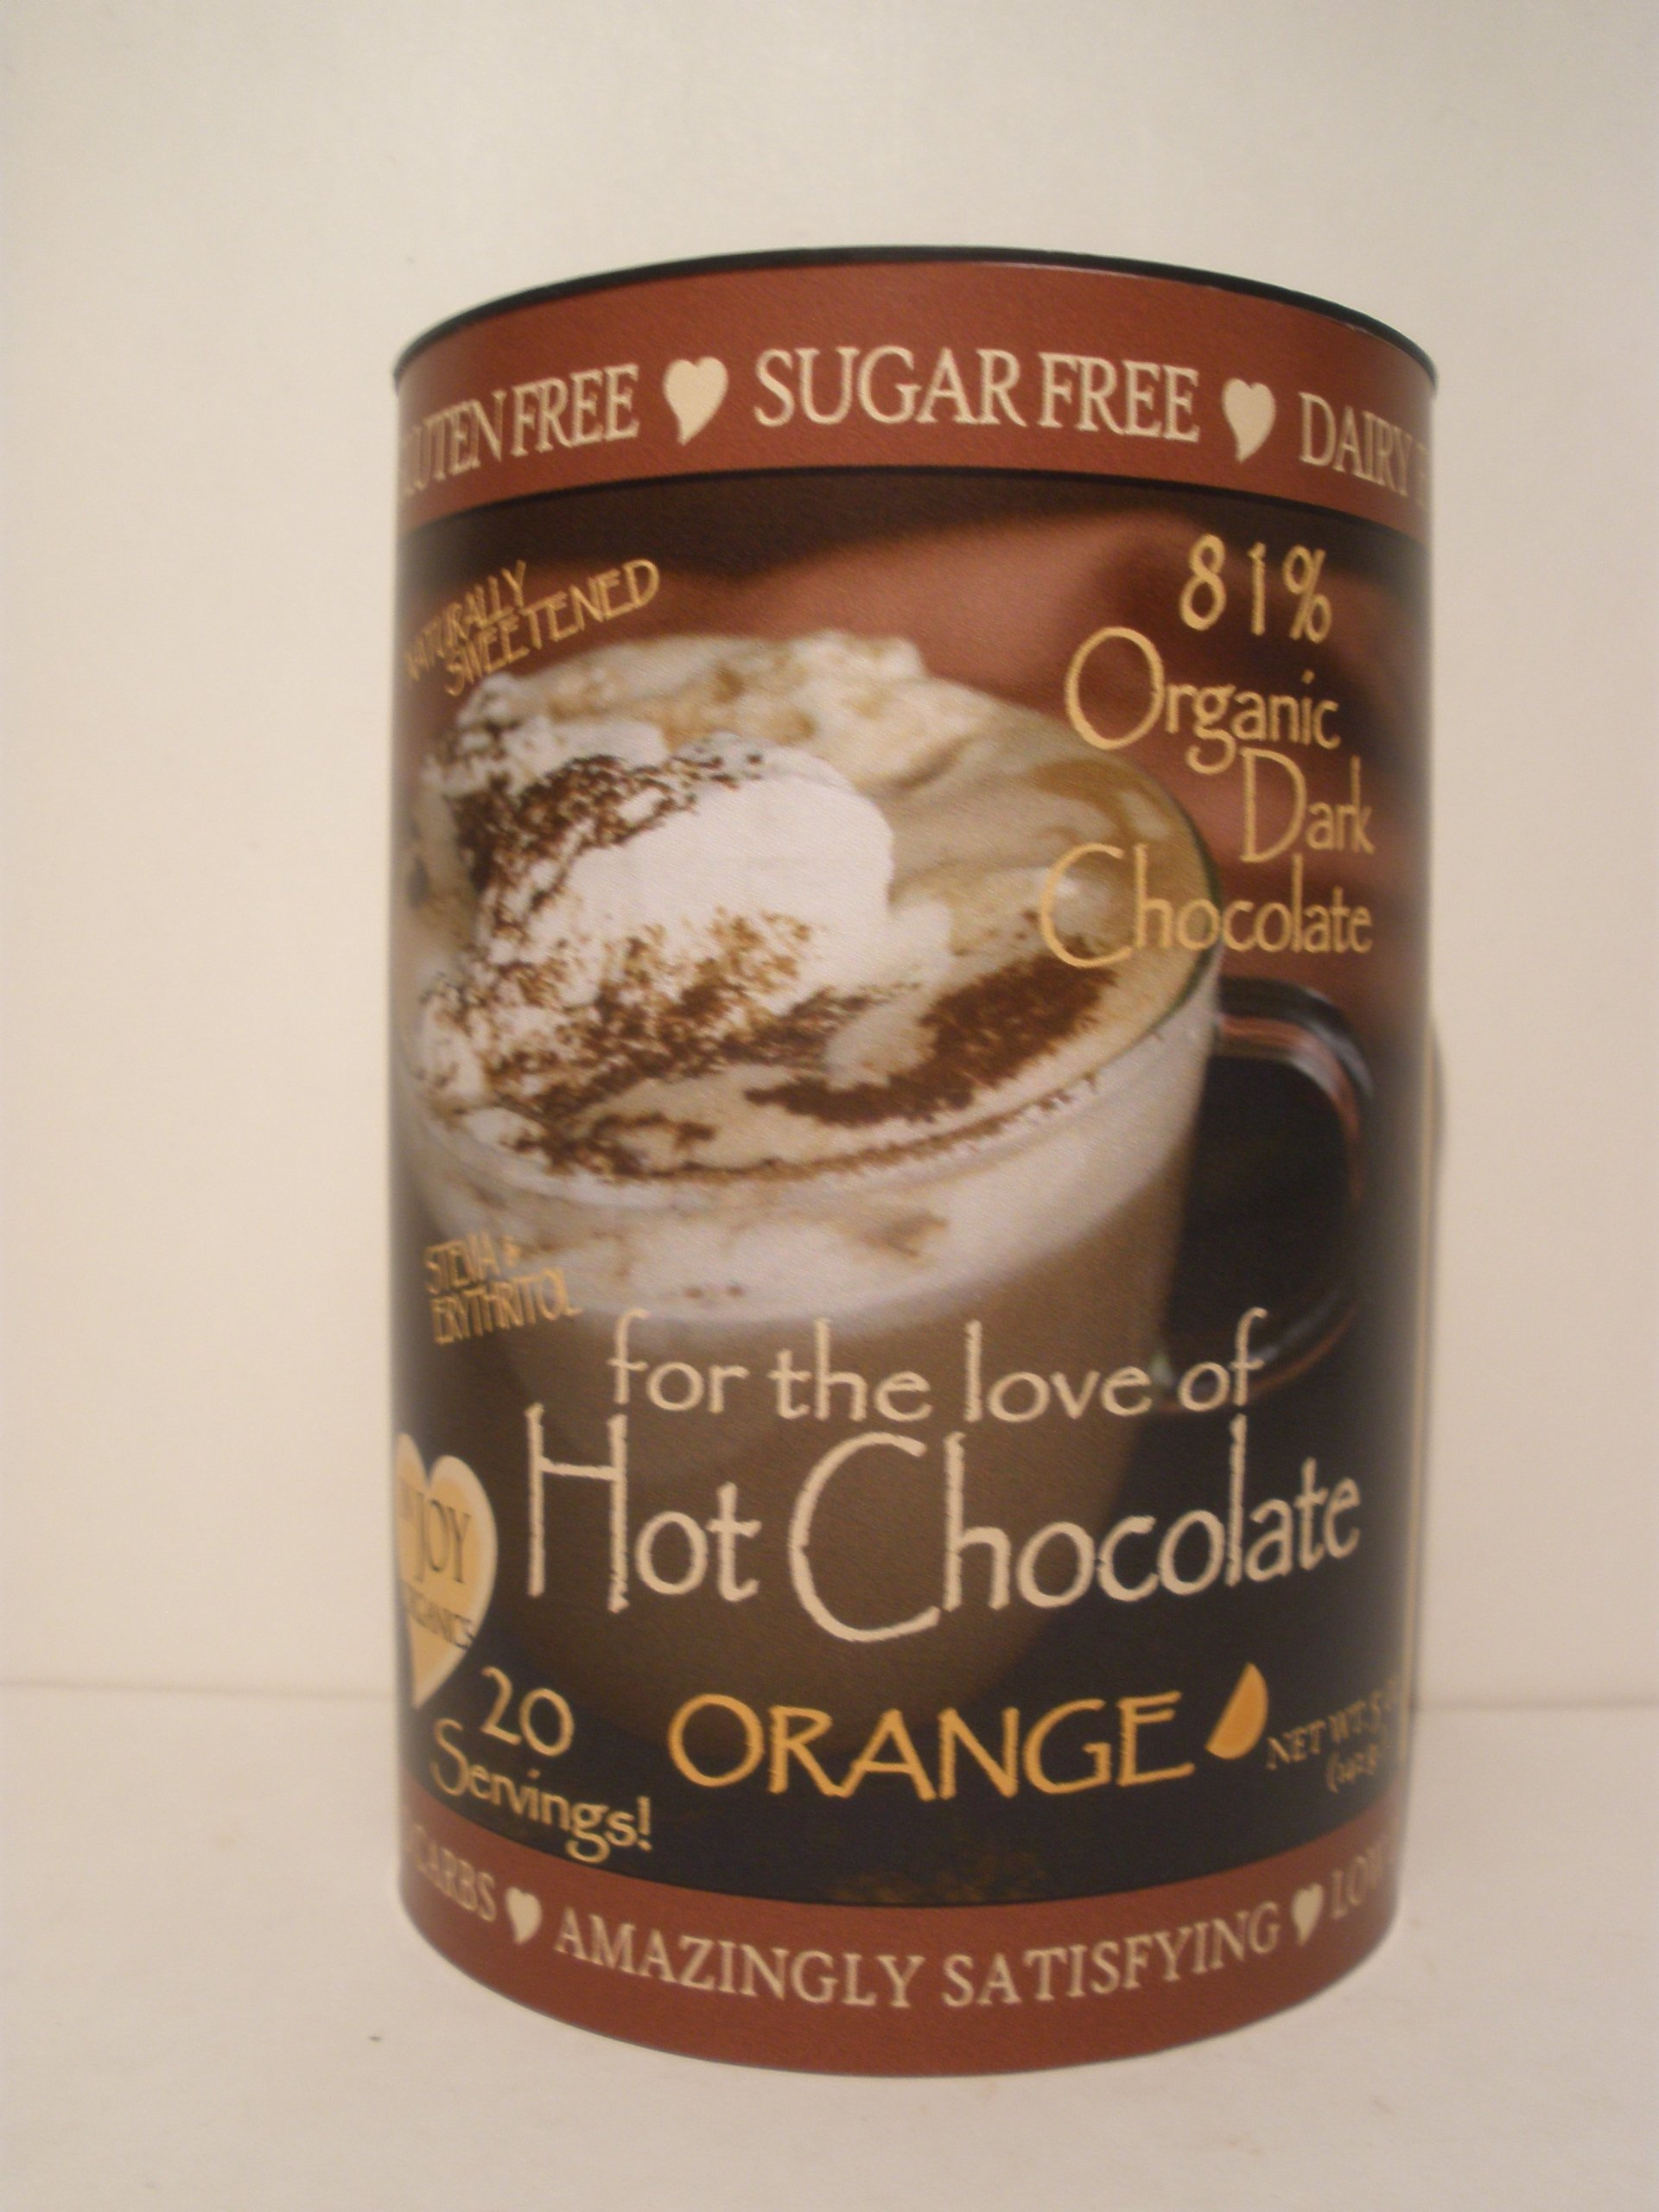 InJoy Organics, Organic, Dark Chocolate, Dairy Free, Sugar Free, Gluten Free, Hot Chocolate, Orange, 20 Servings